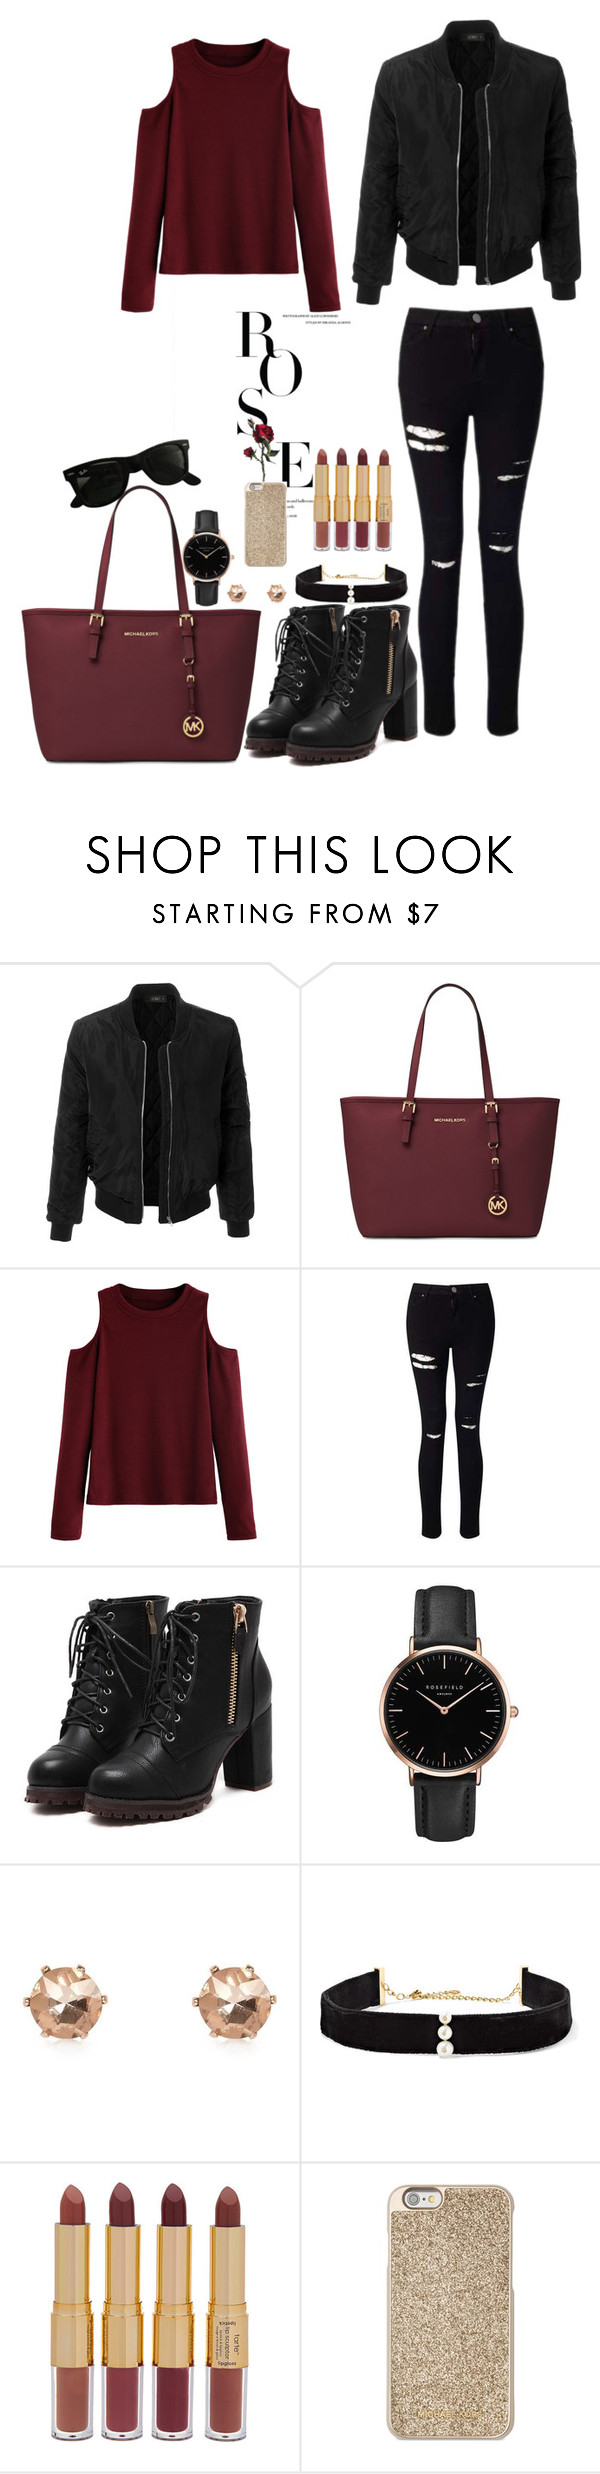 """""""wine red"""" by gorlmoria on Polyvore featuring LE3NO, Michael Kors, WithChic, Miss Selfridge, Topshop, River Island, Anissa Kermiche, tarte and Ray-Ban"""